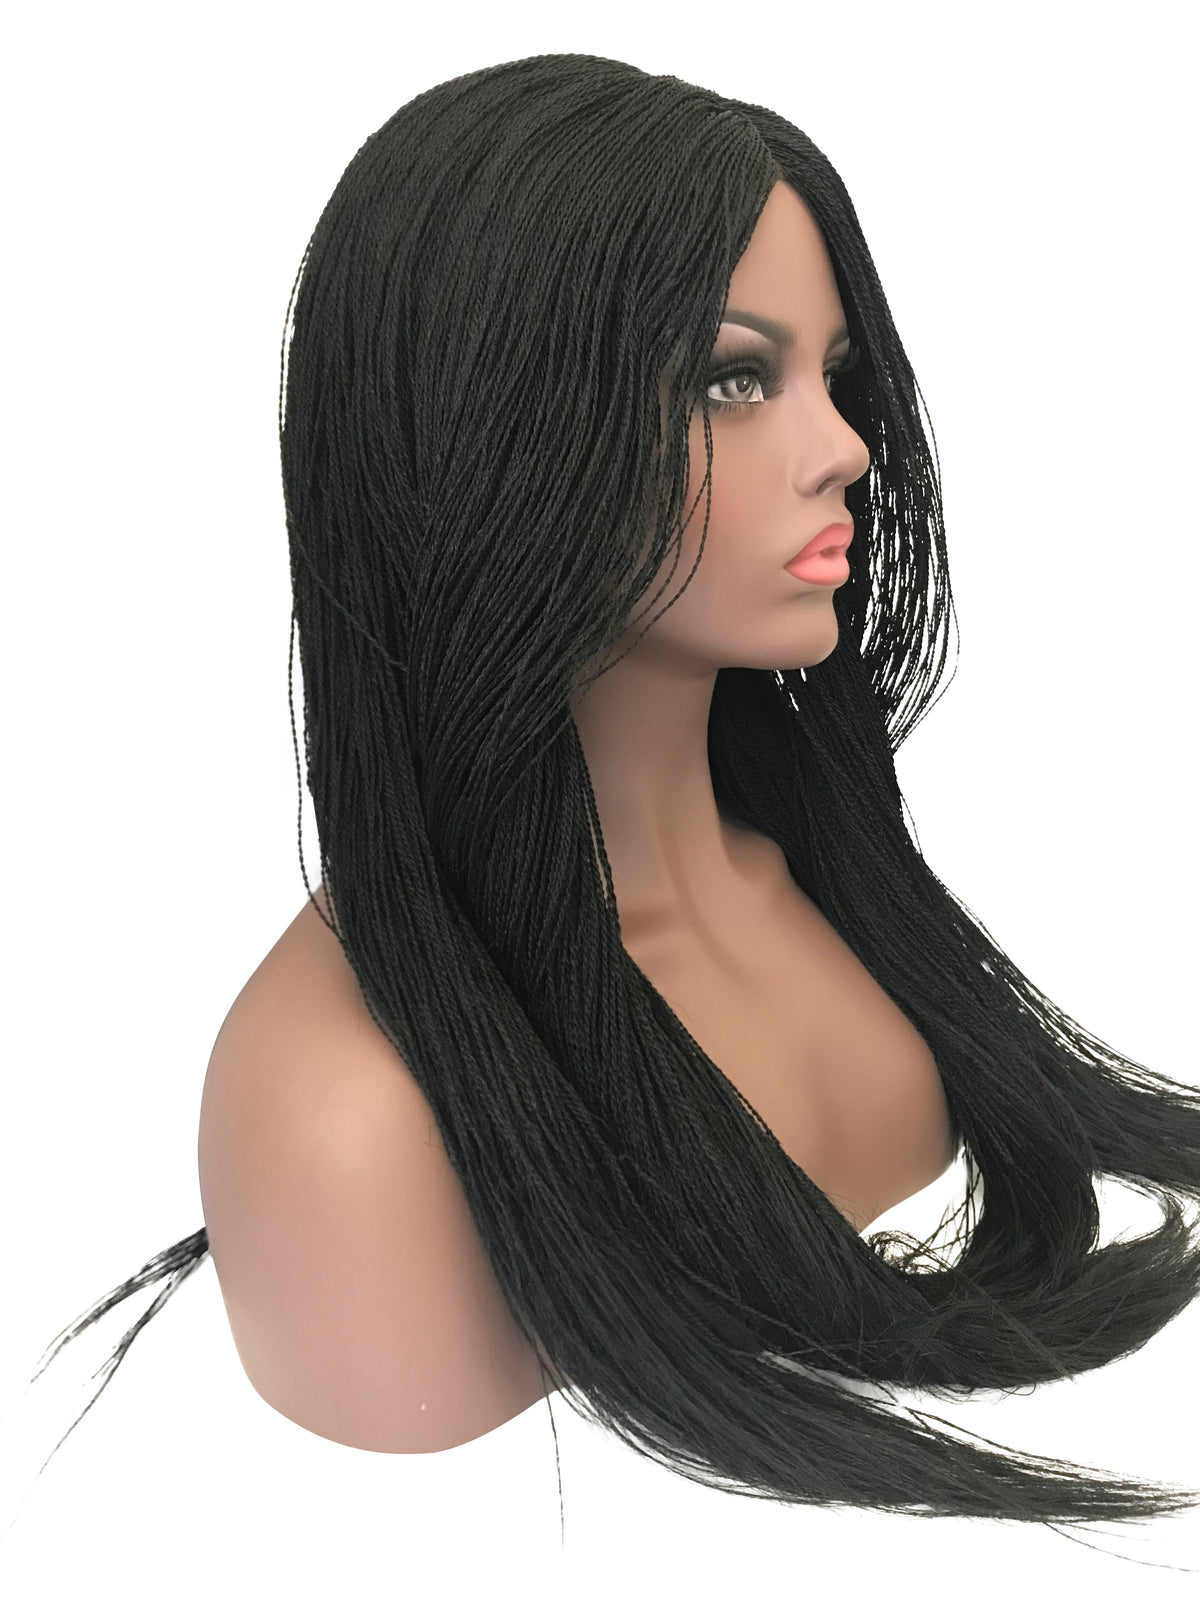 Ankarage_Million_Micro_Twist_Braided_Wig_Unit_African_American_Braided_Wig_Million_Braided_Wig_Micro_Braided_Wig